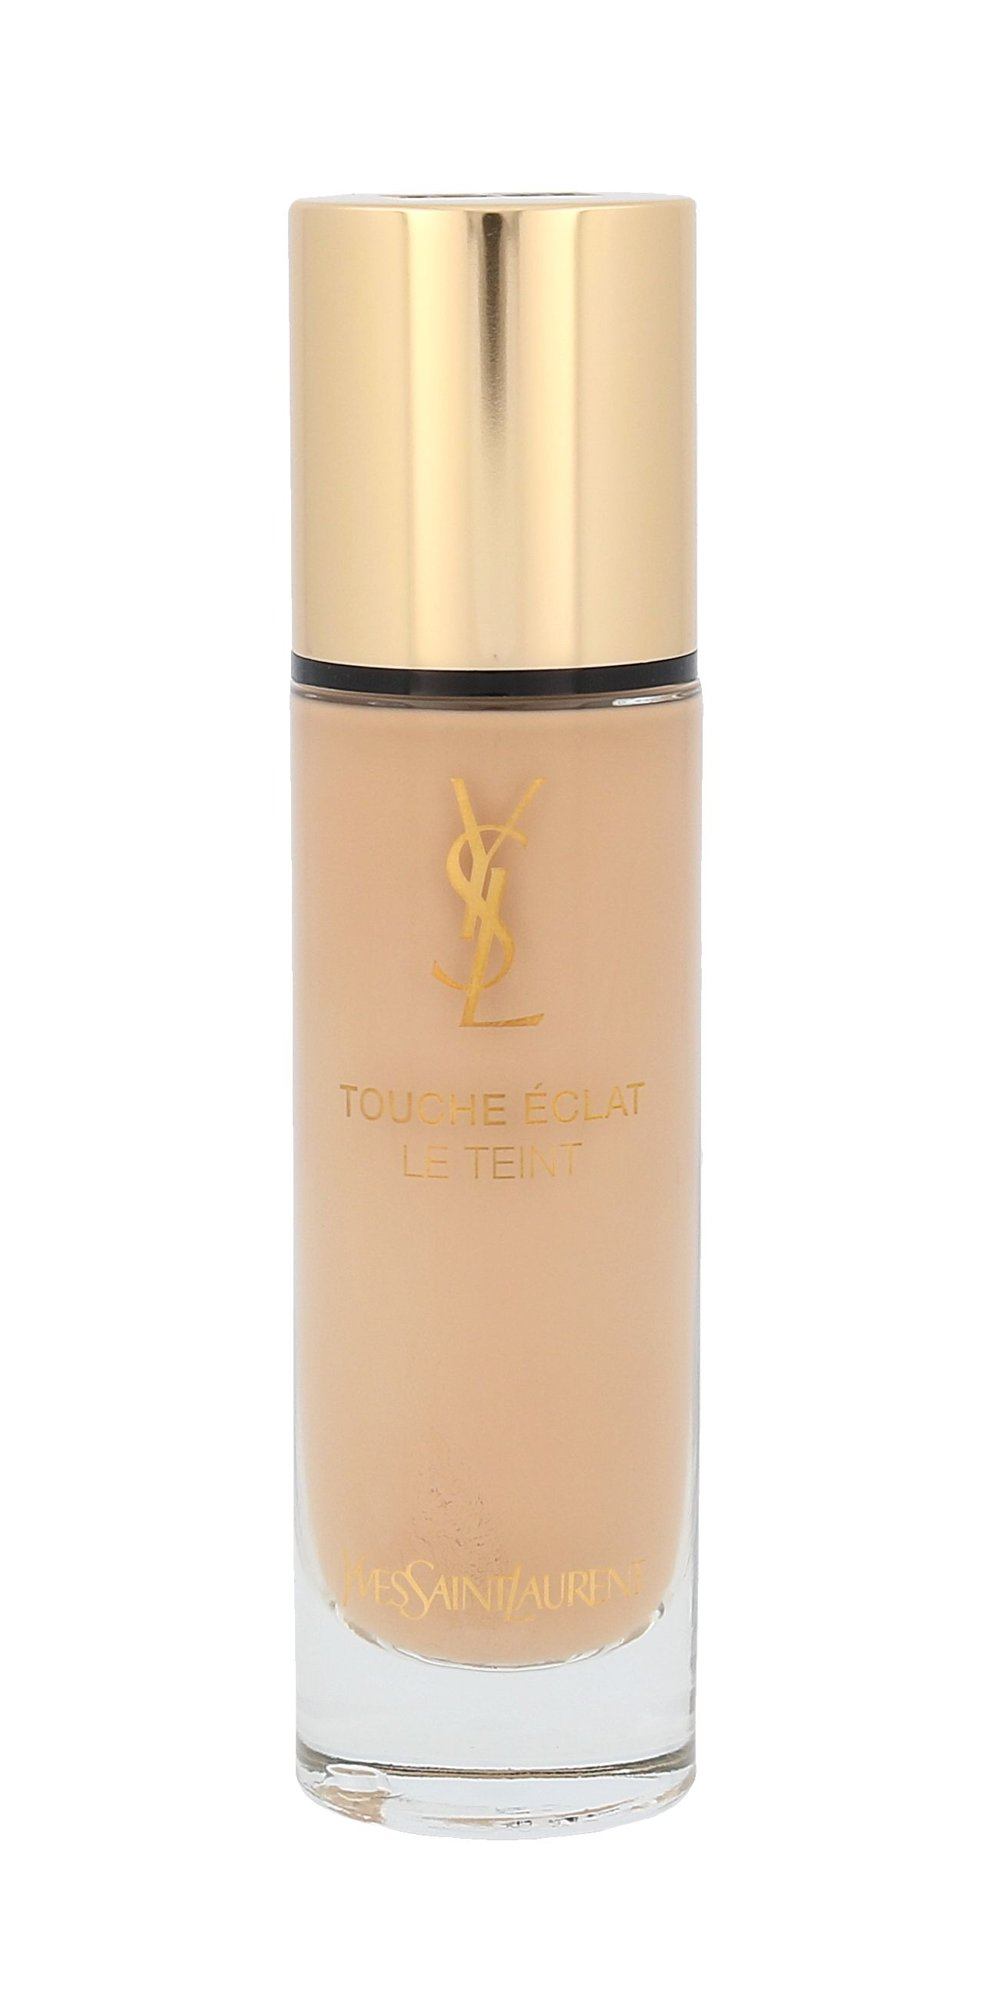 Yves Saint Laurent Le Teint Touche Eclat Cosmetic 30ml BD10 Warm Porcelain